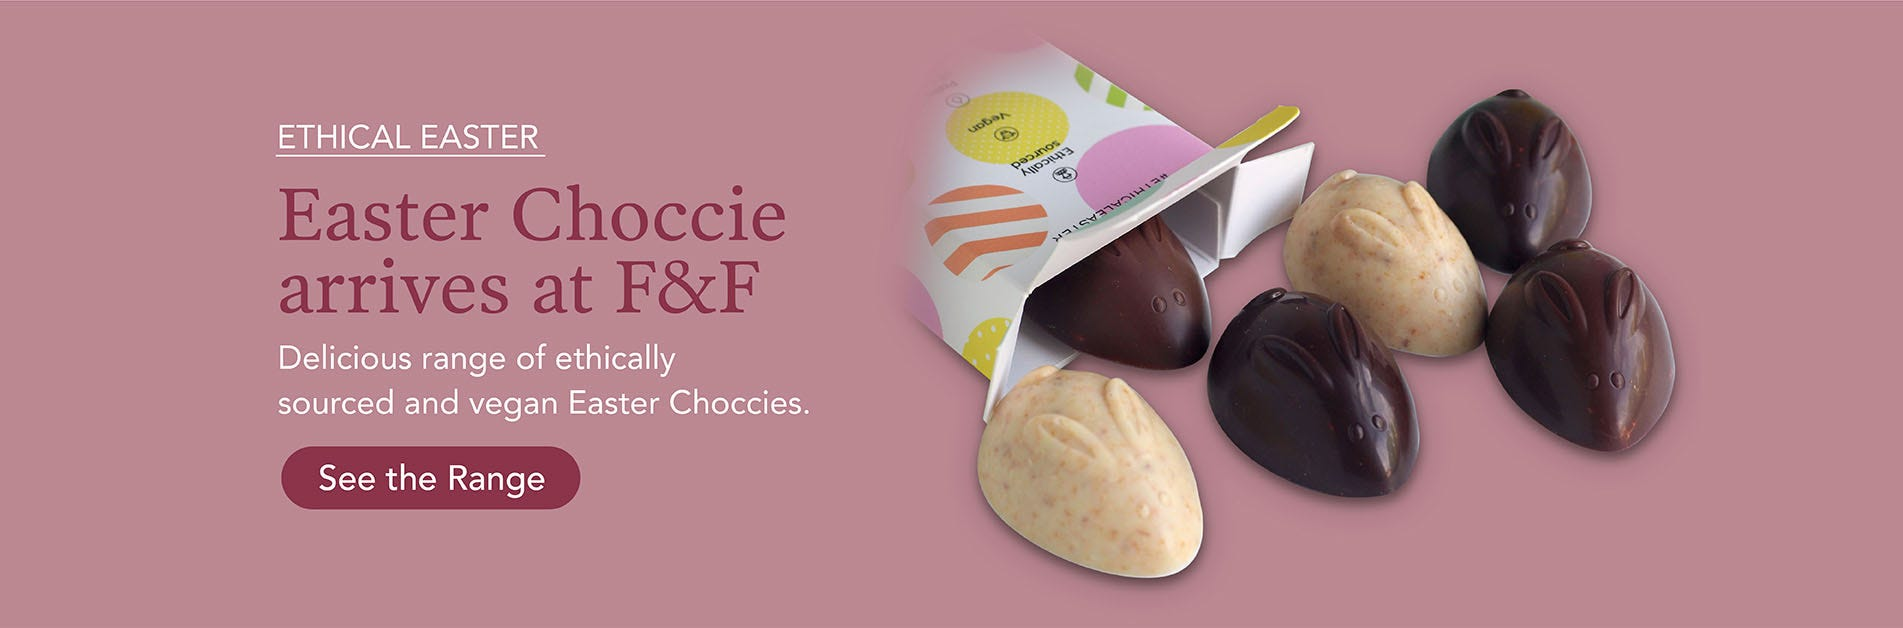 Shop Easter Choccie at F&F